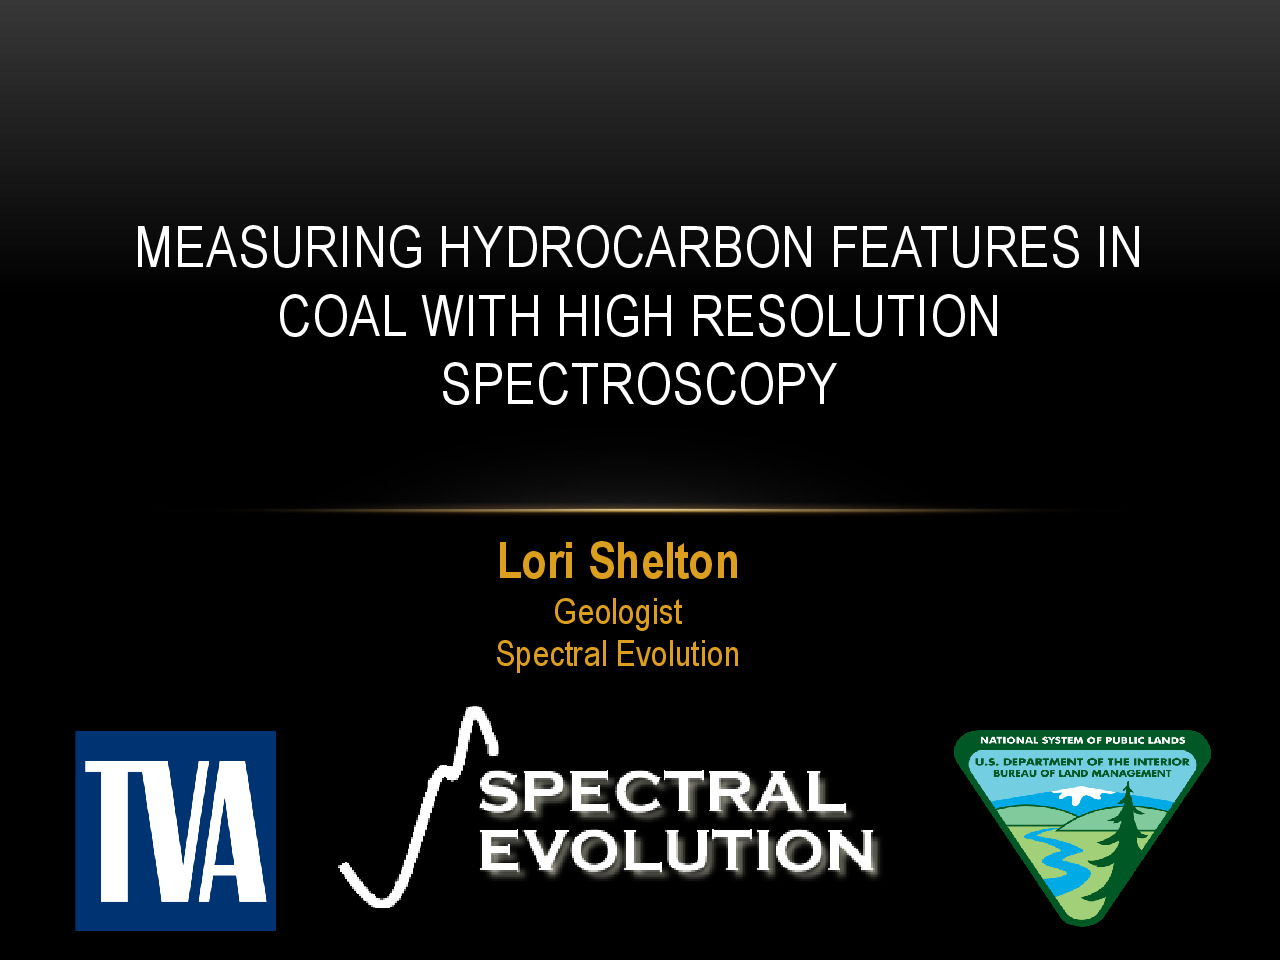 thumbnail of Measuring-Hydrocarbon-features-in-Coal-with-High-Resolution-Autosaved